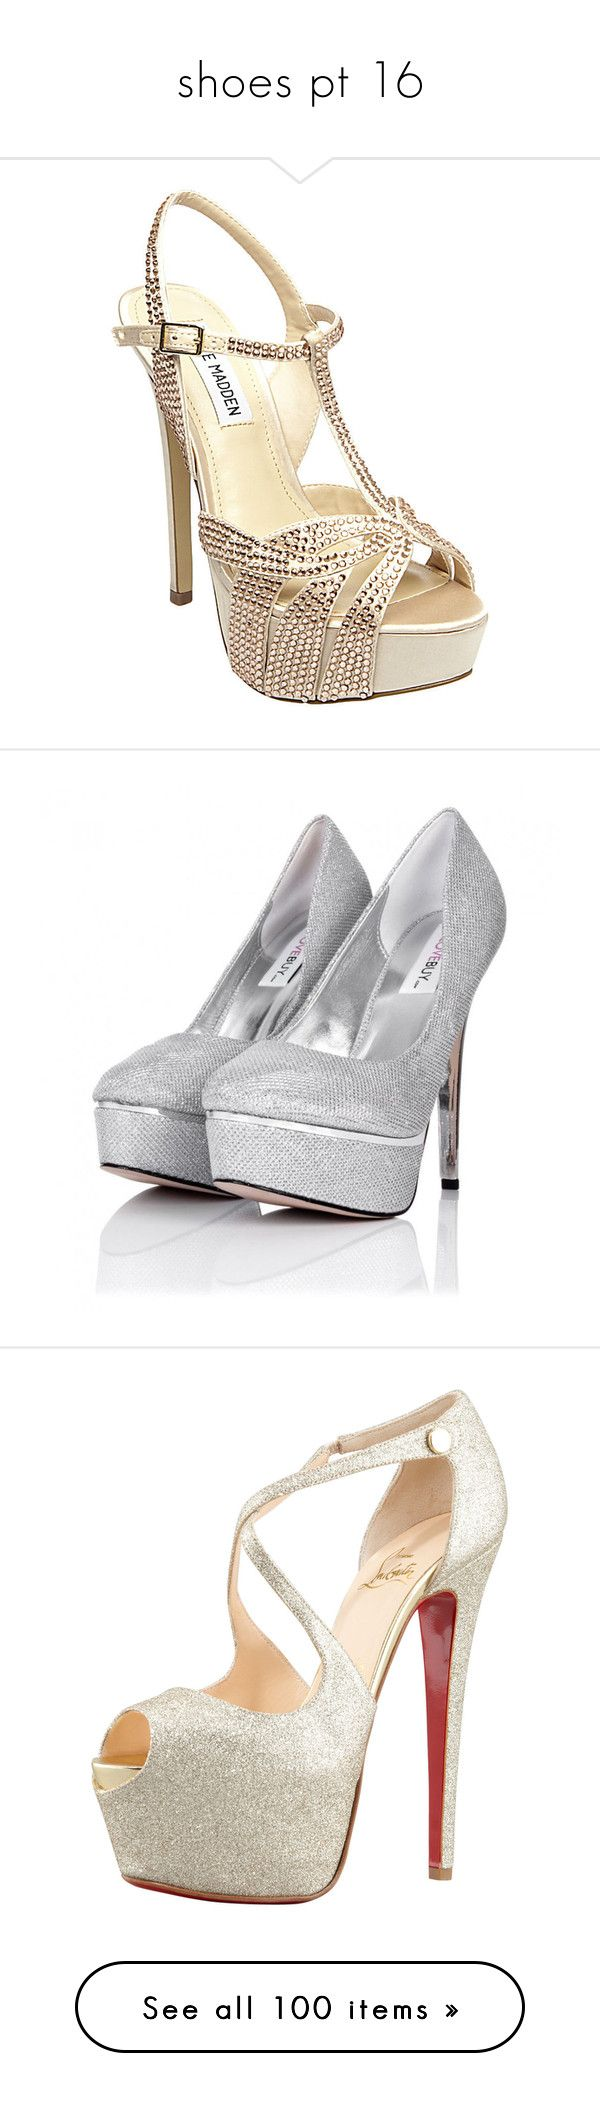 """""""shoes pt 16"""" by looking-fly ❤ liked on Polyvore featuring shoes, sandals, heels, high heels, blush multi, platform sandals, silver high heel sandals, heeled sandals, strappy high heel sandals and peep toe sandals"""